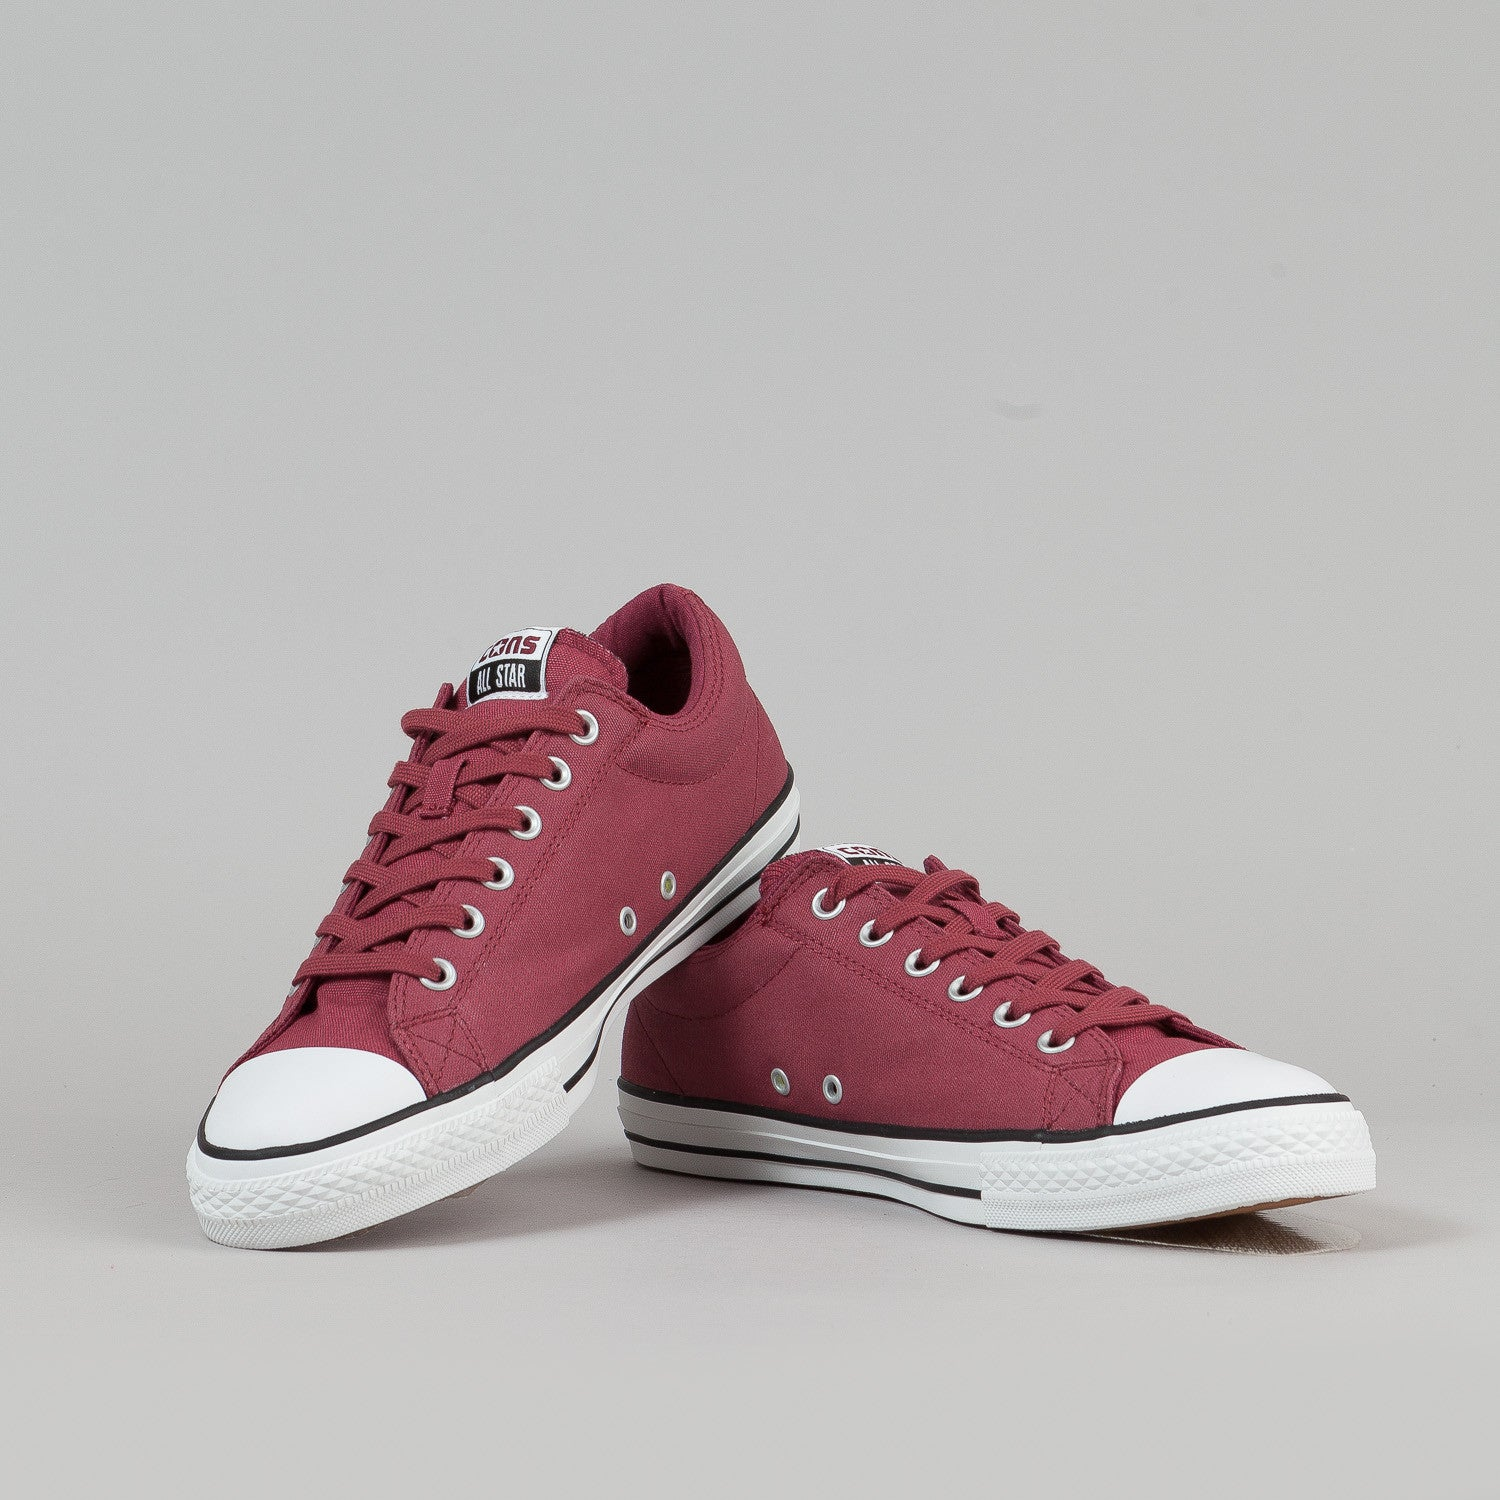 Converse CTS OX Shoes - Cranberry / White